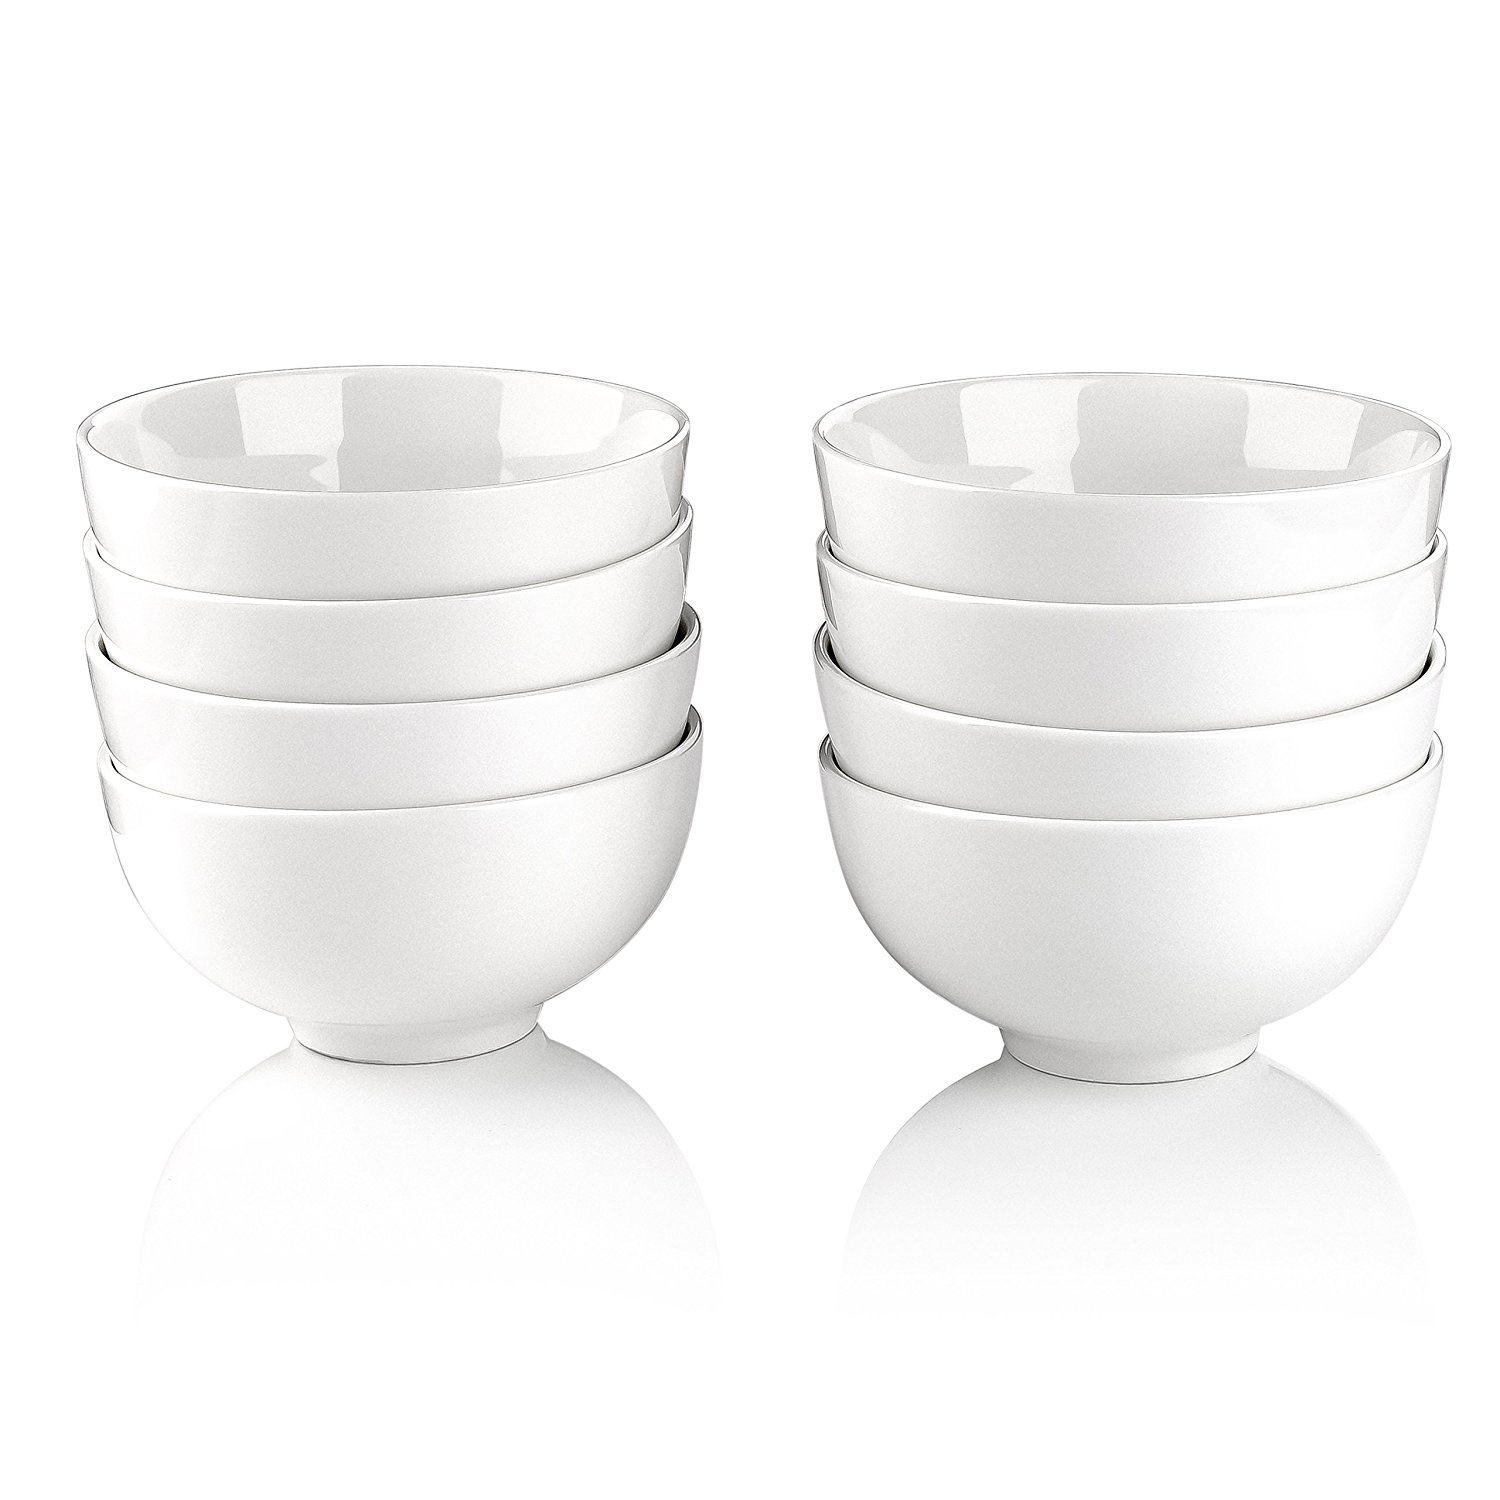 Malacasa, Series Regular, Ivory White Porcelain 5'' / 15oz Cereal Soup Rice Bowls, Set of 8